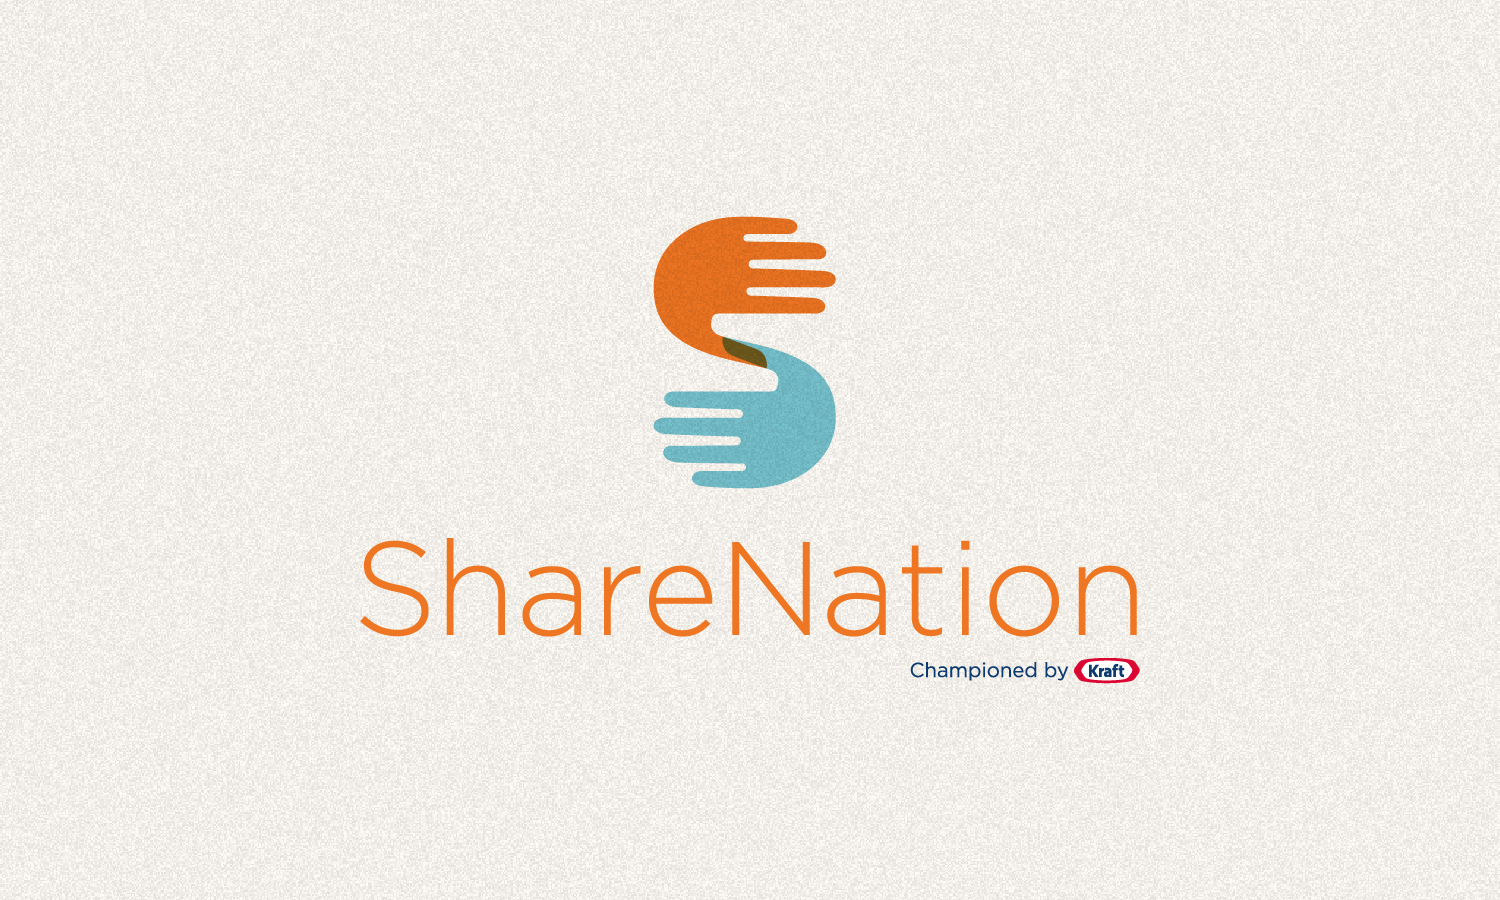 sharenation